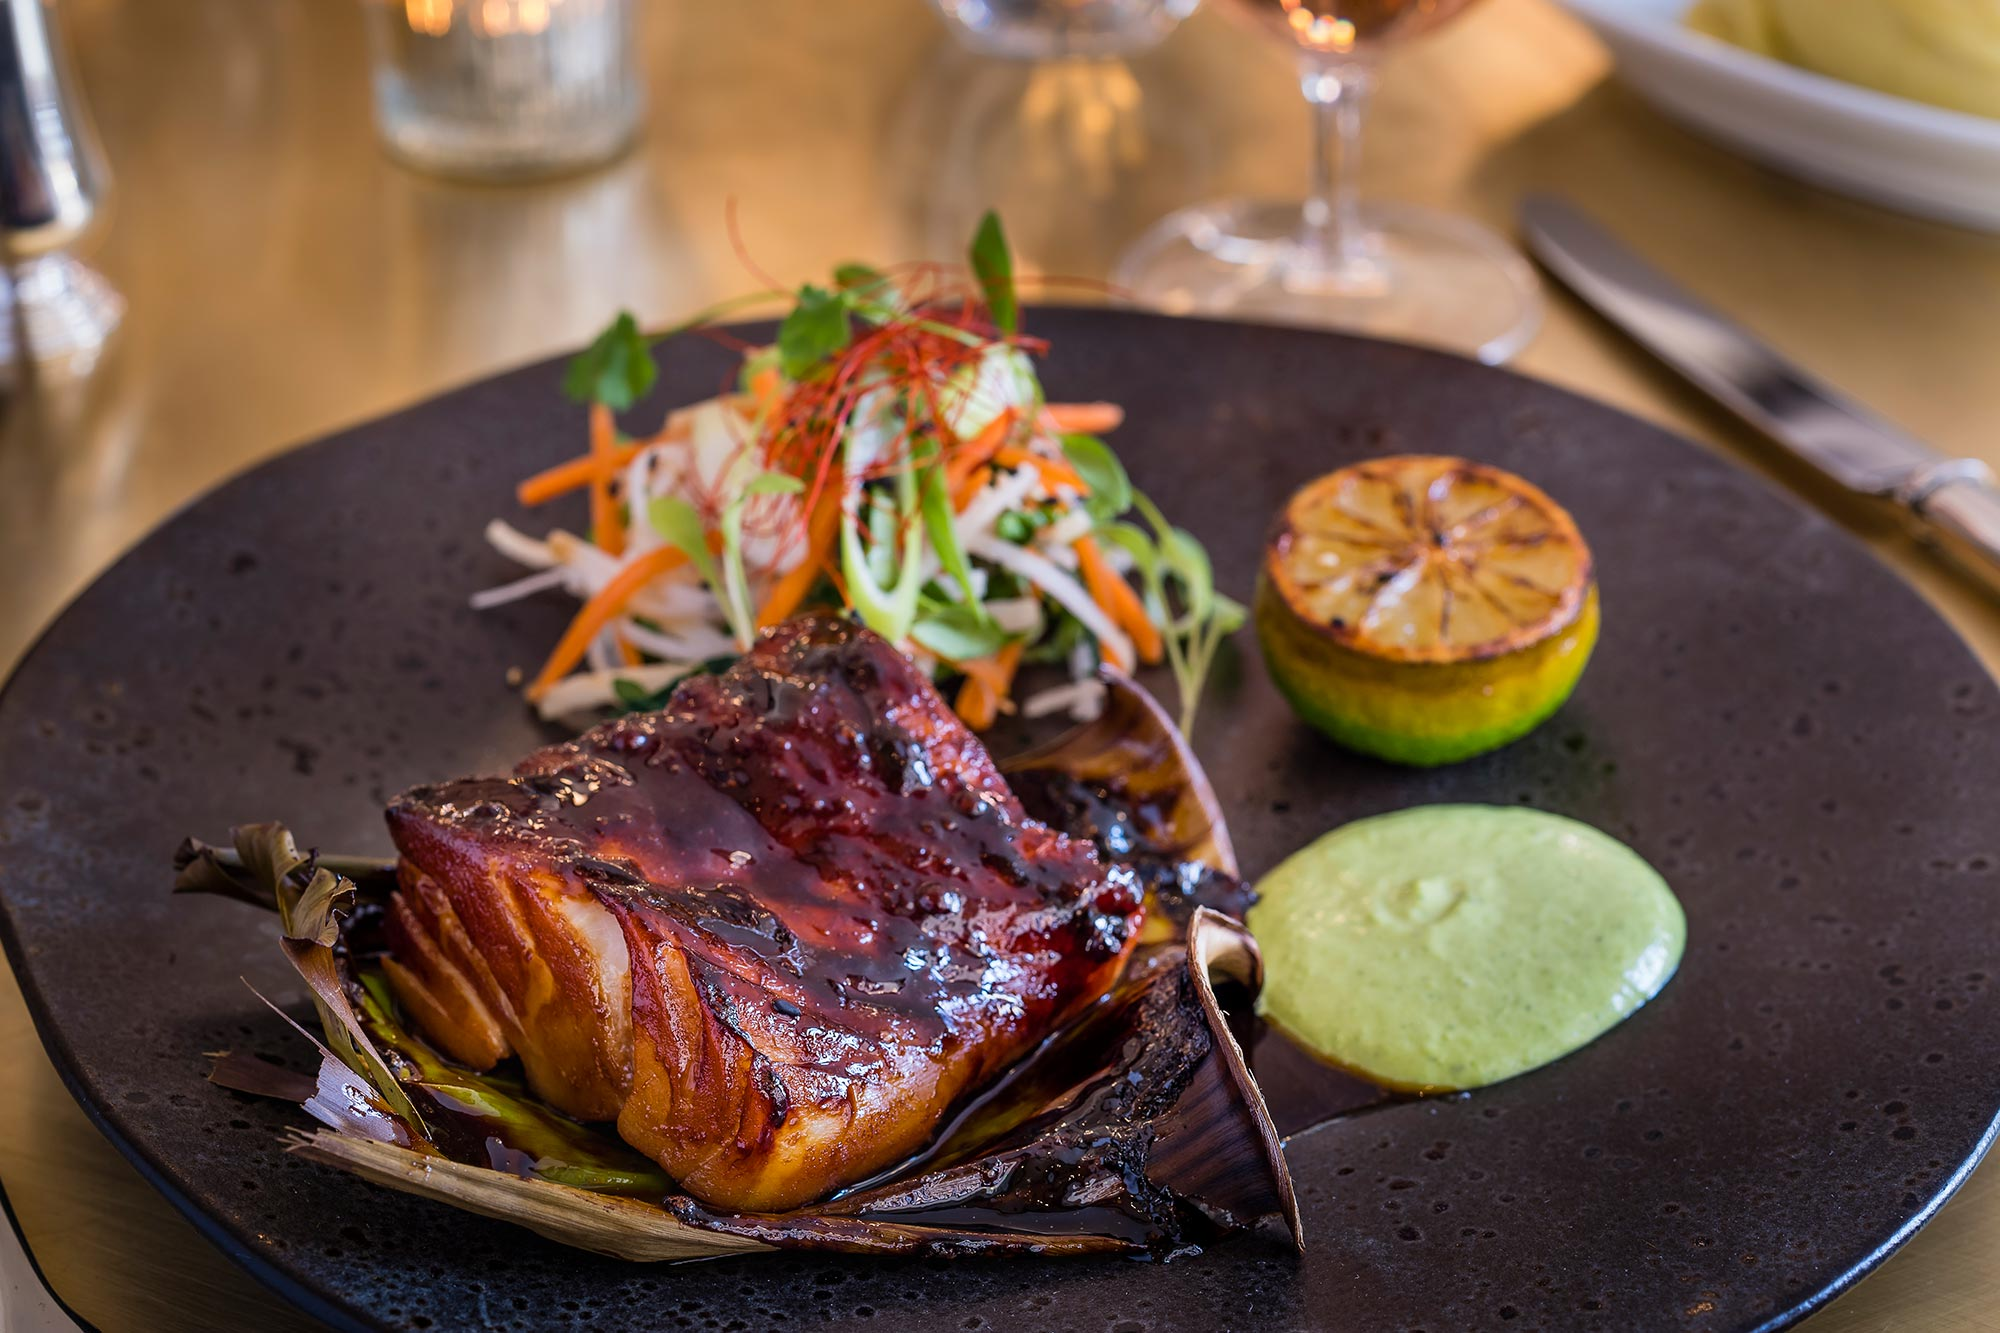 The Ivy Cobham Brasserie - Blackened Cod, banana leaf with a miso glaze, spring onion, and salad - The Ivy Cobham Brasserie